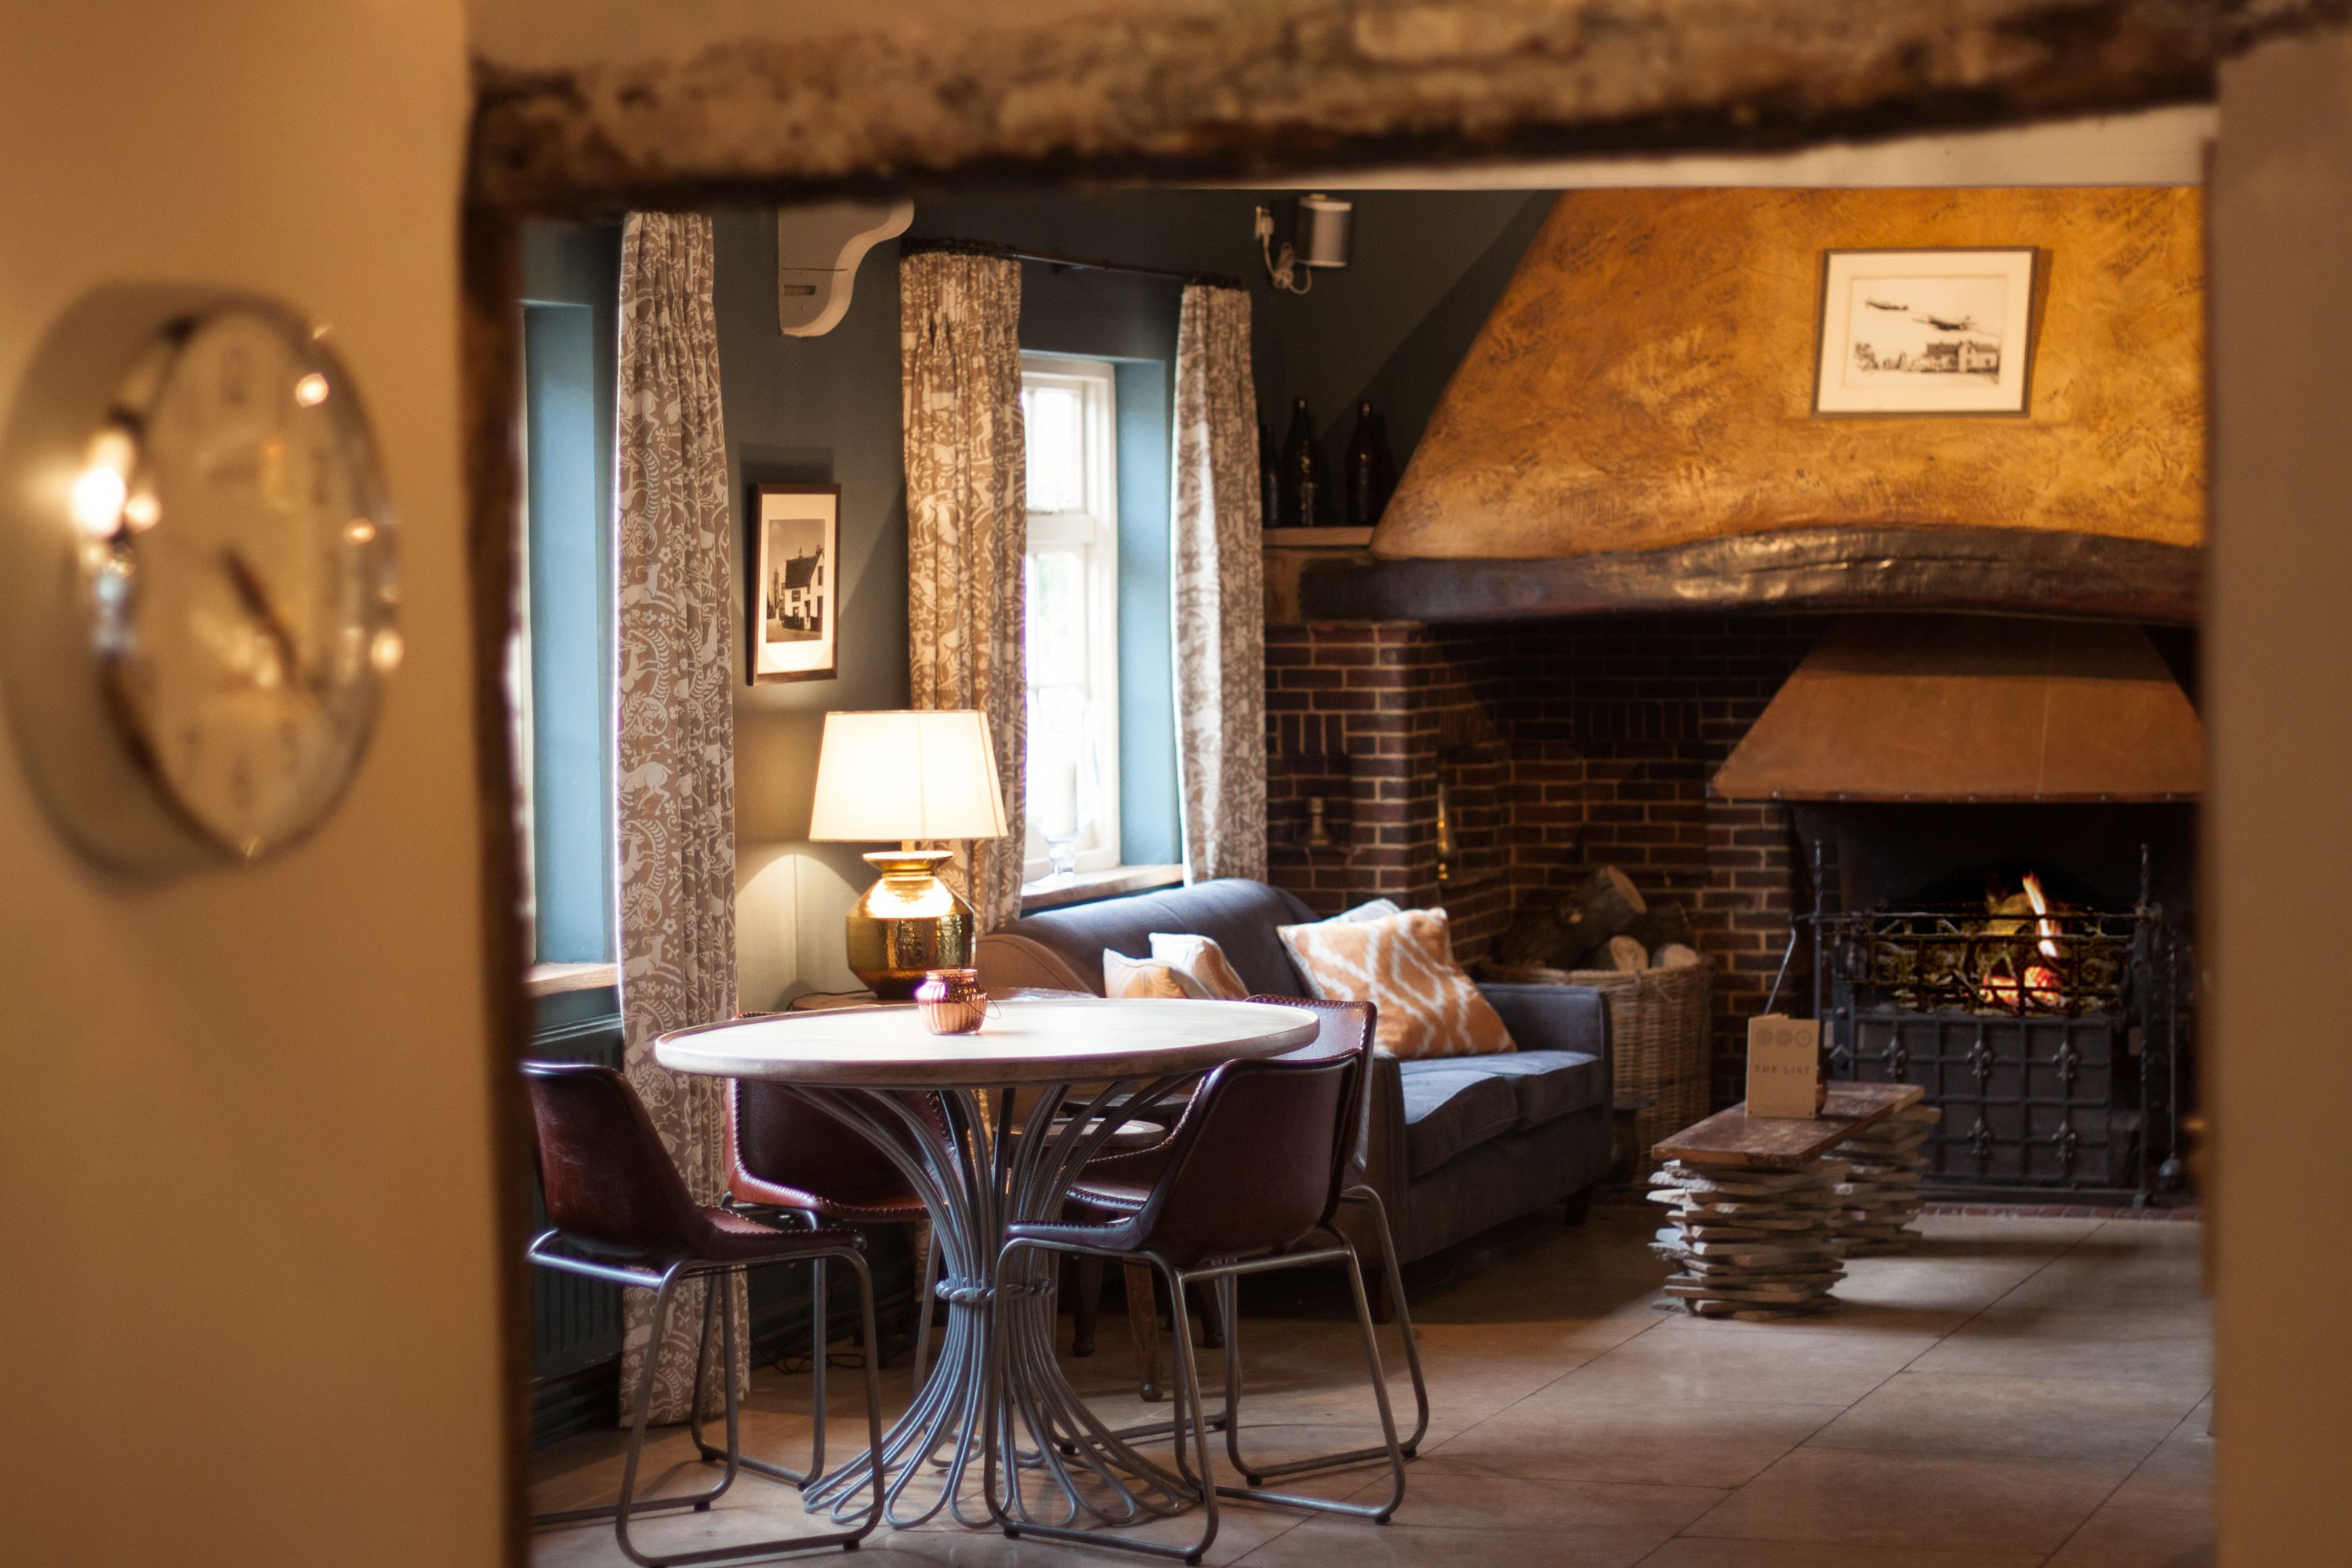 7 English Pubs Worth an Overnight Stay